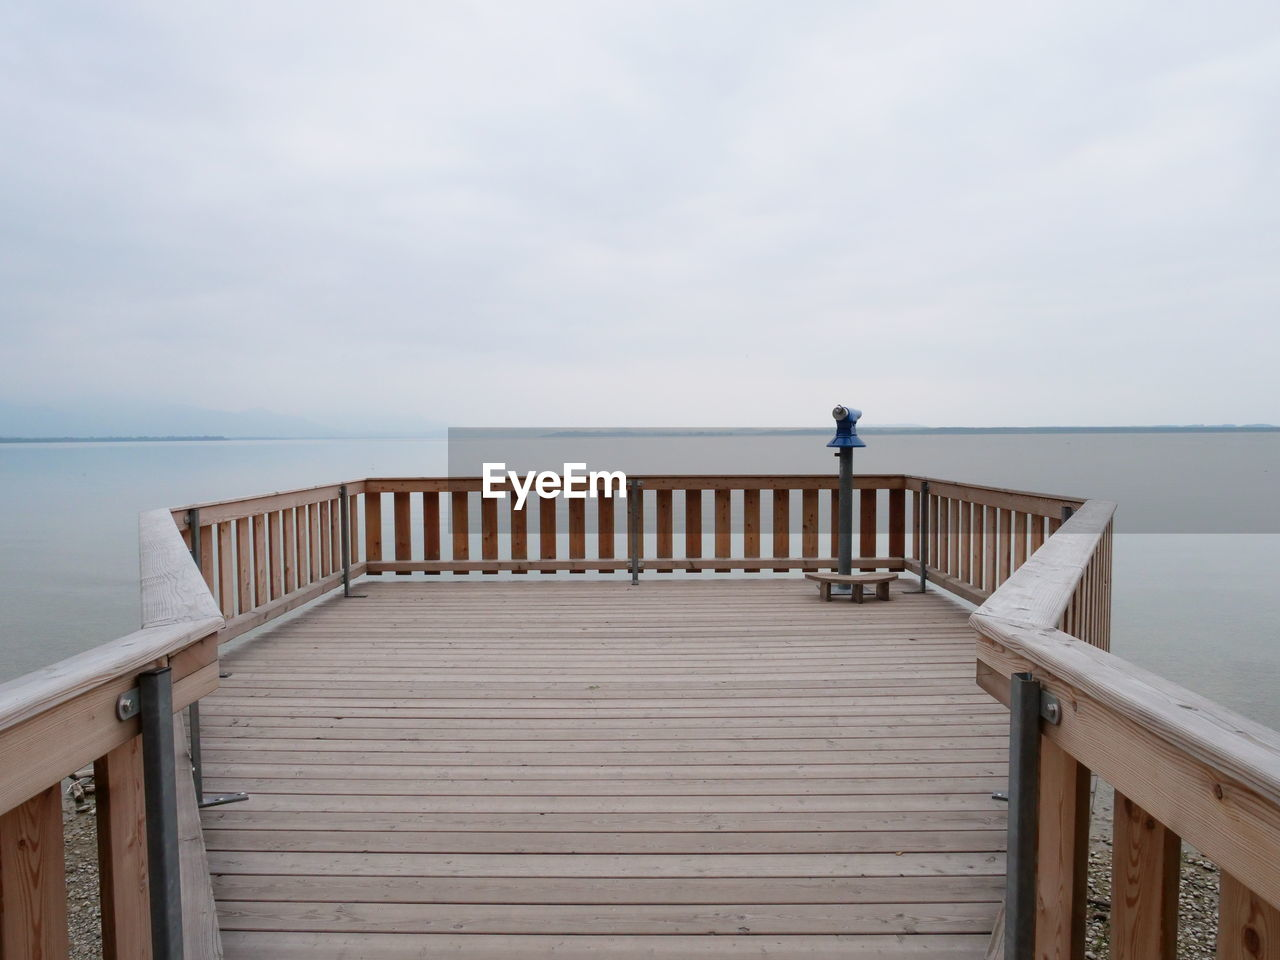 sky, railing, water, horizon over water, horizon, sea, scenics - nature, beauty in nature, cloud - sky, tranquil scene, nature, wood - material, tranquility, pier, day, architecture, built structure, idyllic, one person, outdoors, wood paneling